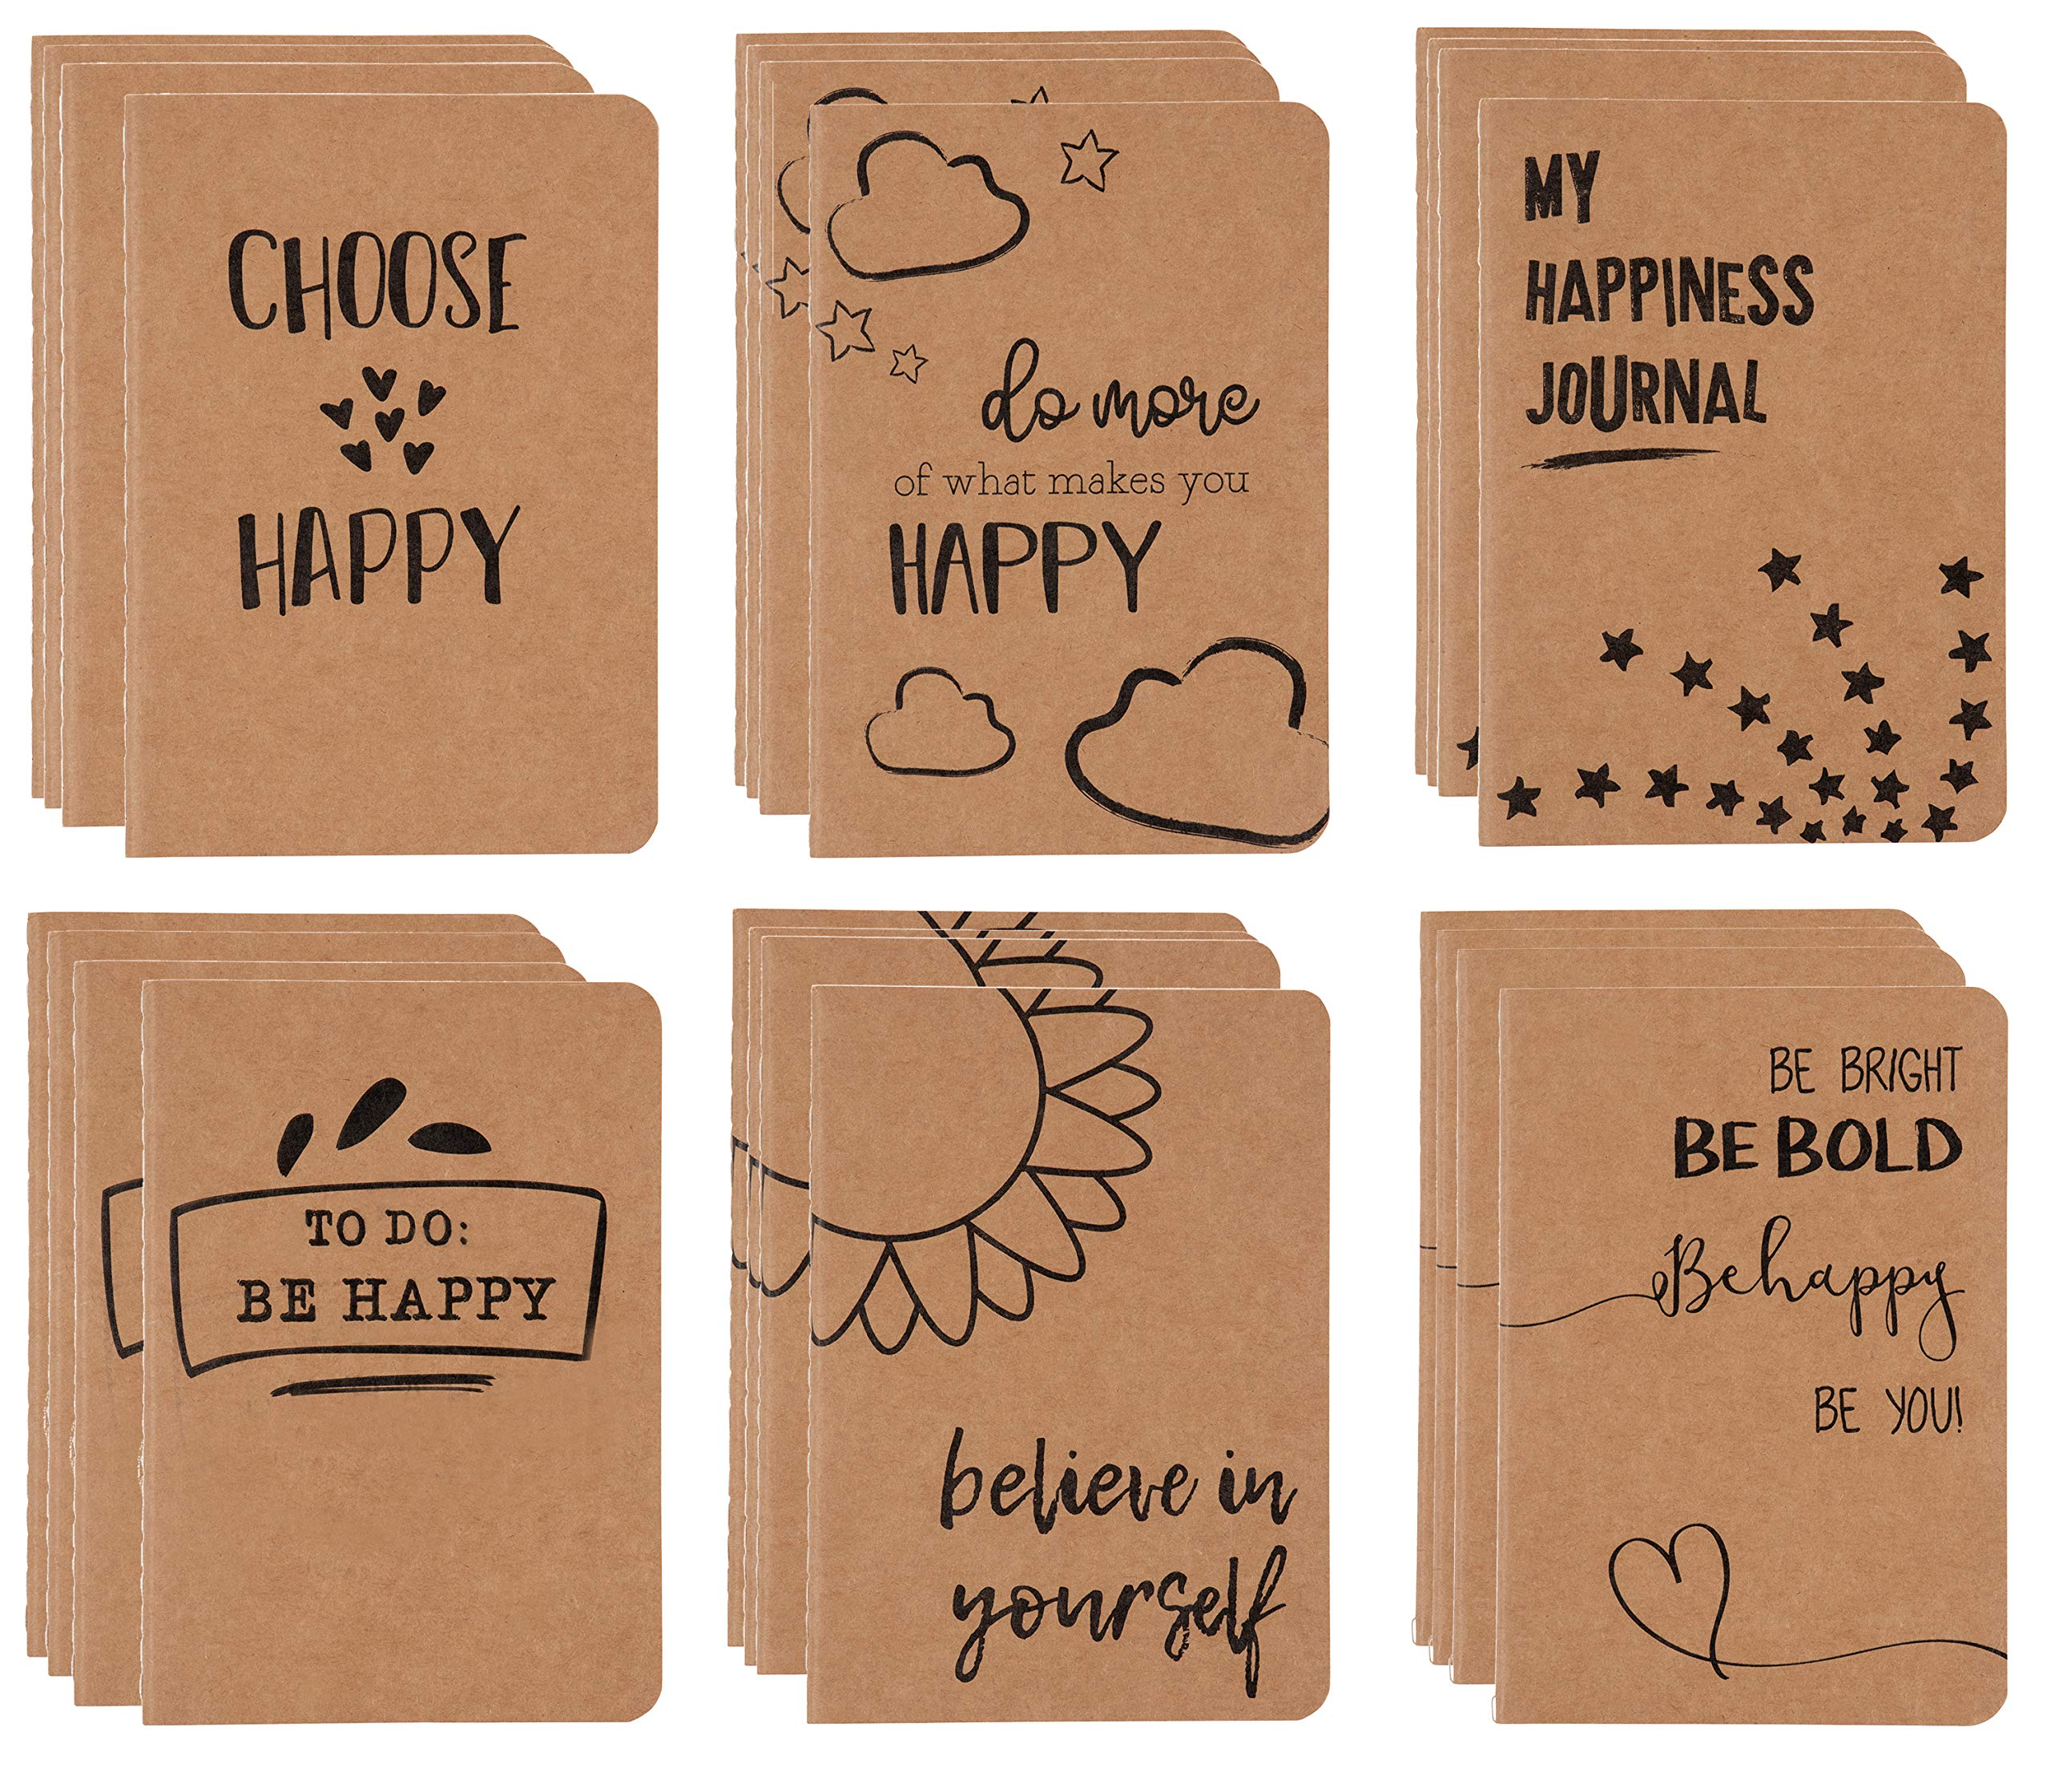 Kraft Notebook - 24-Pack Lined Notebook Journals, Pocket Journal for Travelers, Diary, Notes - 6 Assorted Happy Themed Designs, Soft Cover, 80 Pages, Brown, 4 x 5.7 Inches